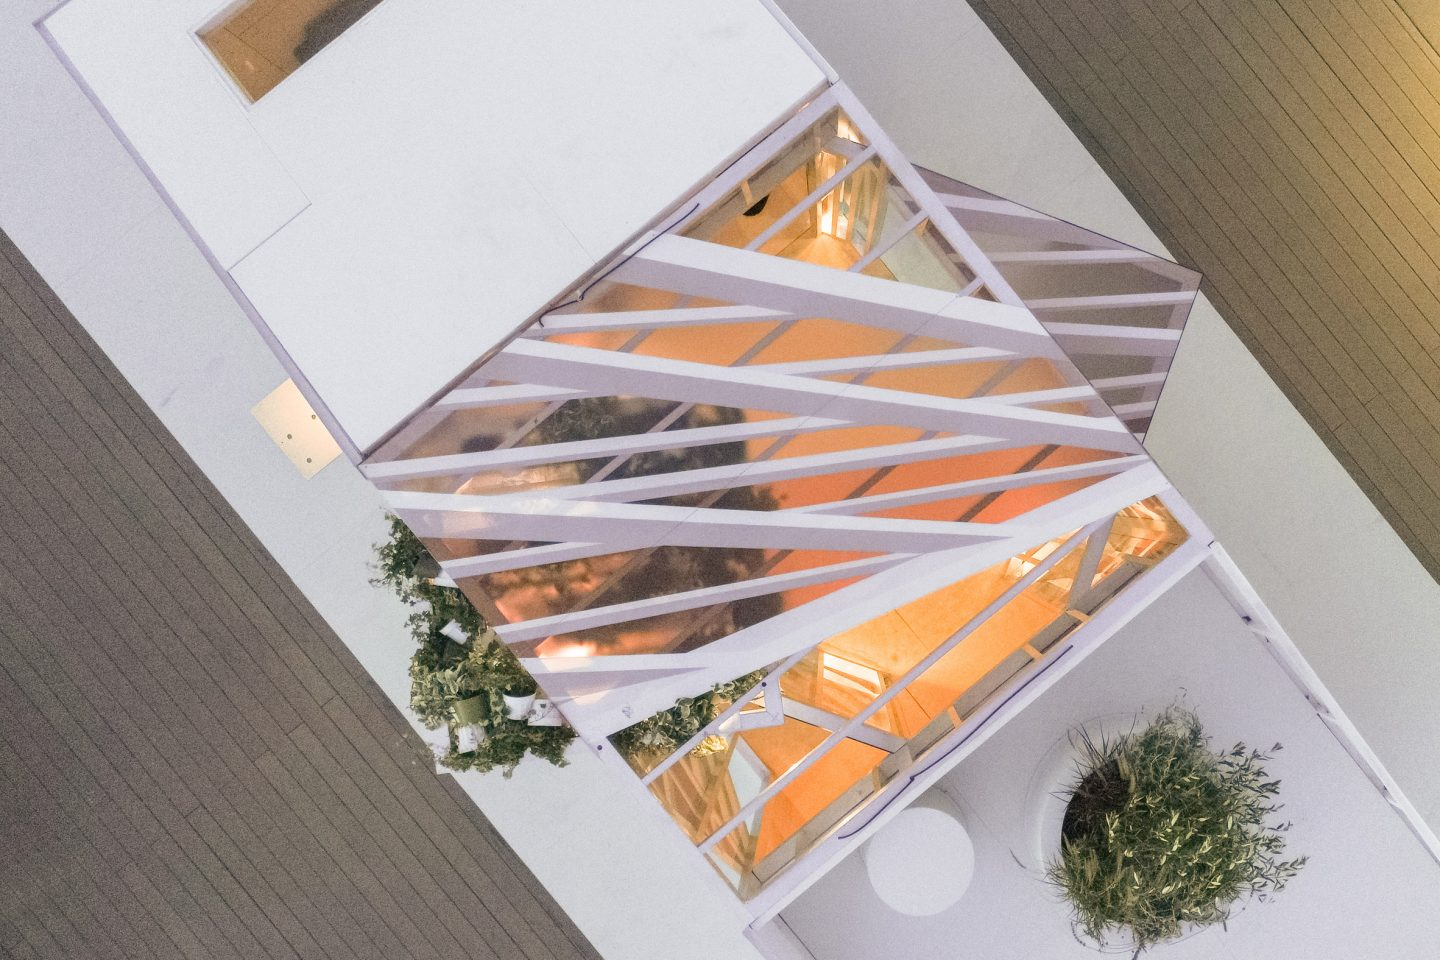 mini-living-urban-cabin-los-angeles-design-architecture-california-usa-dezeen-2364-col-18